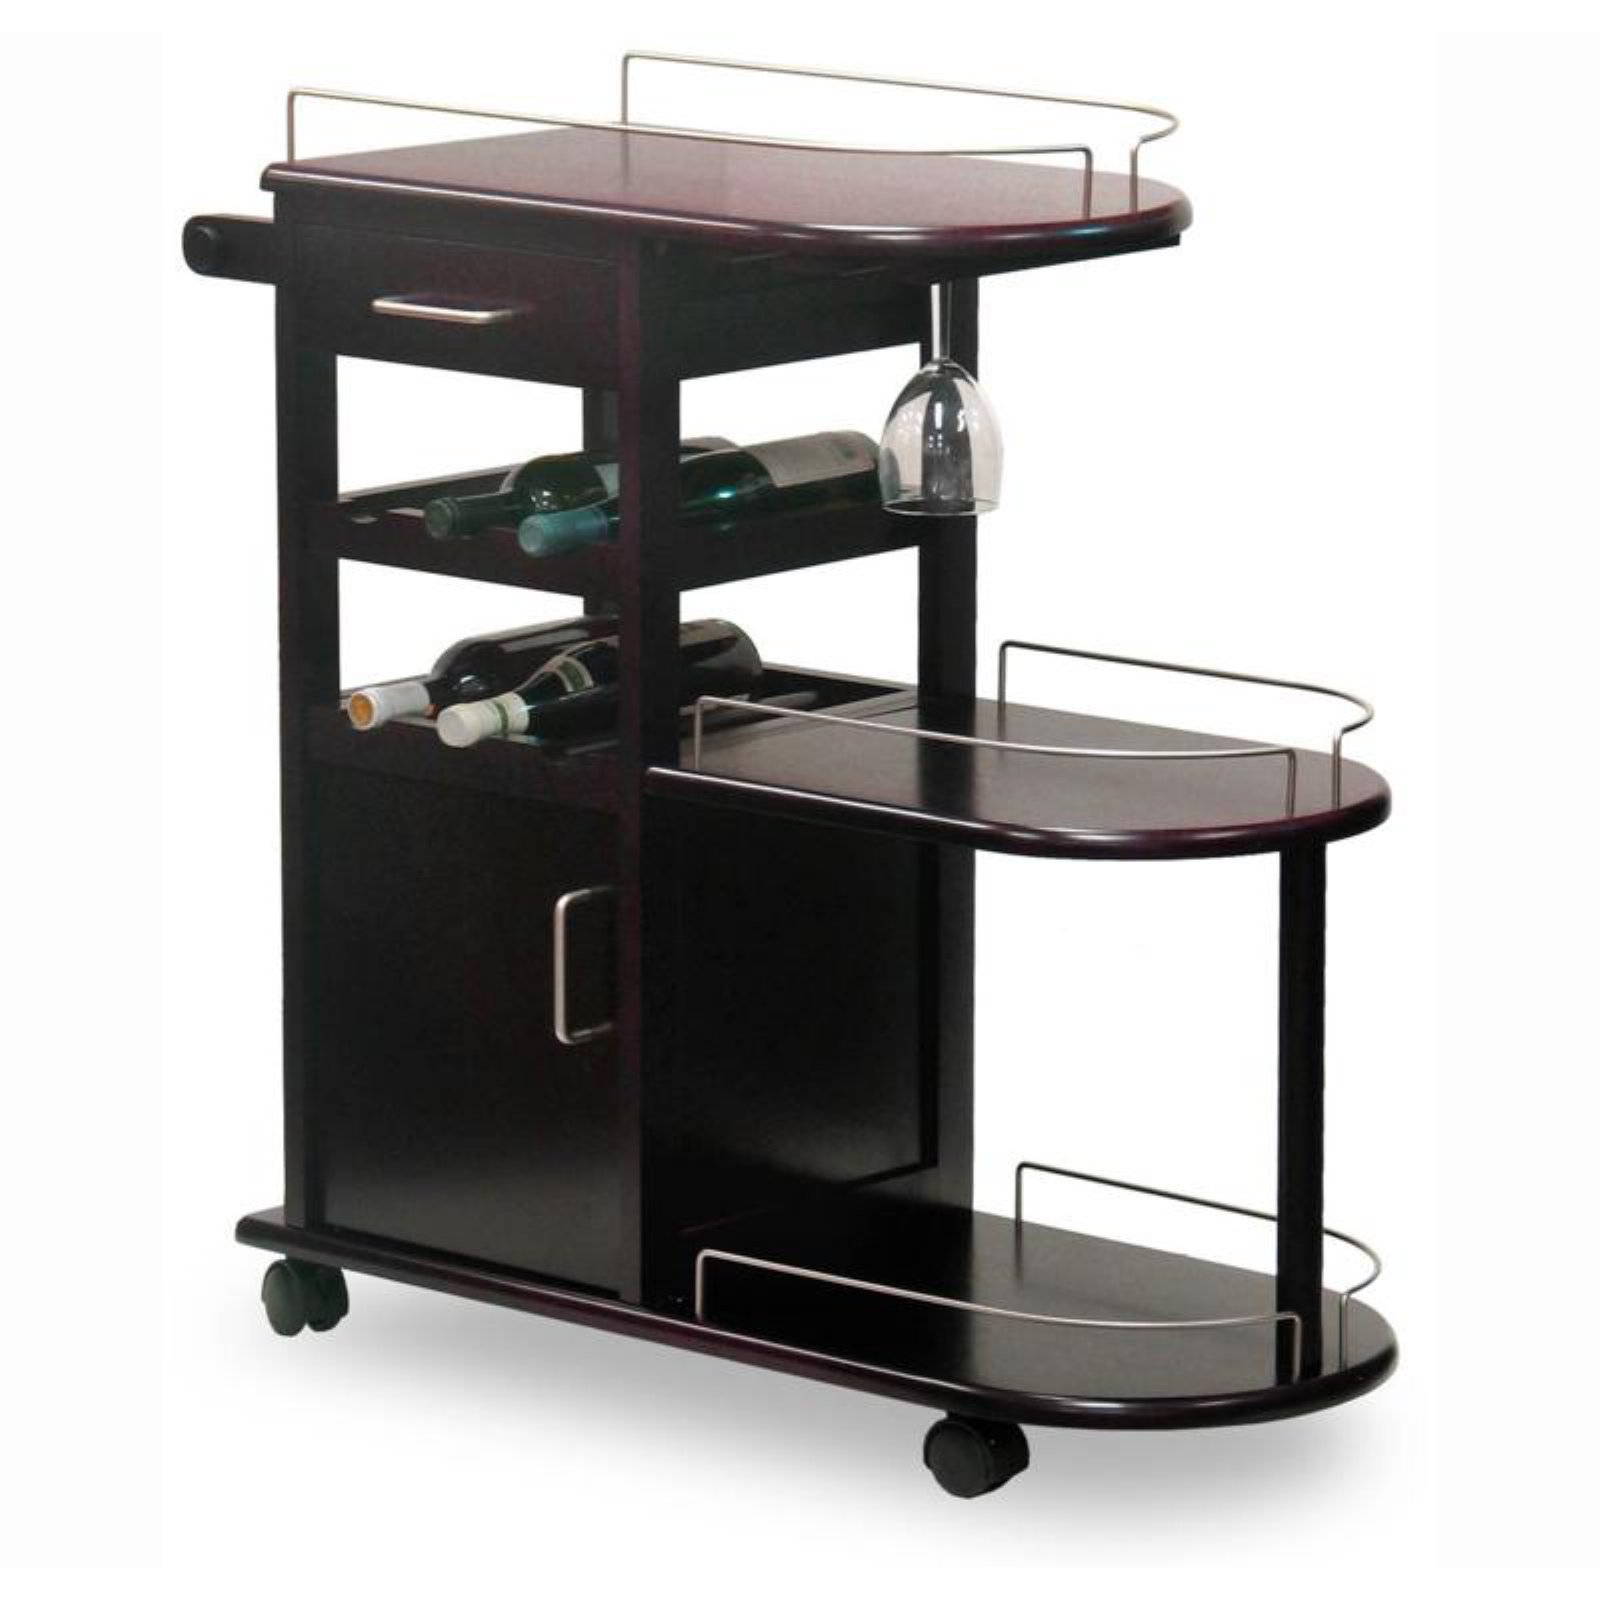 Winsome Wood Jimmy Entertainment Kitchen Cart with Wine Rack, Espresso Finish